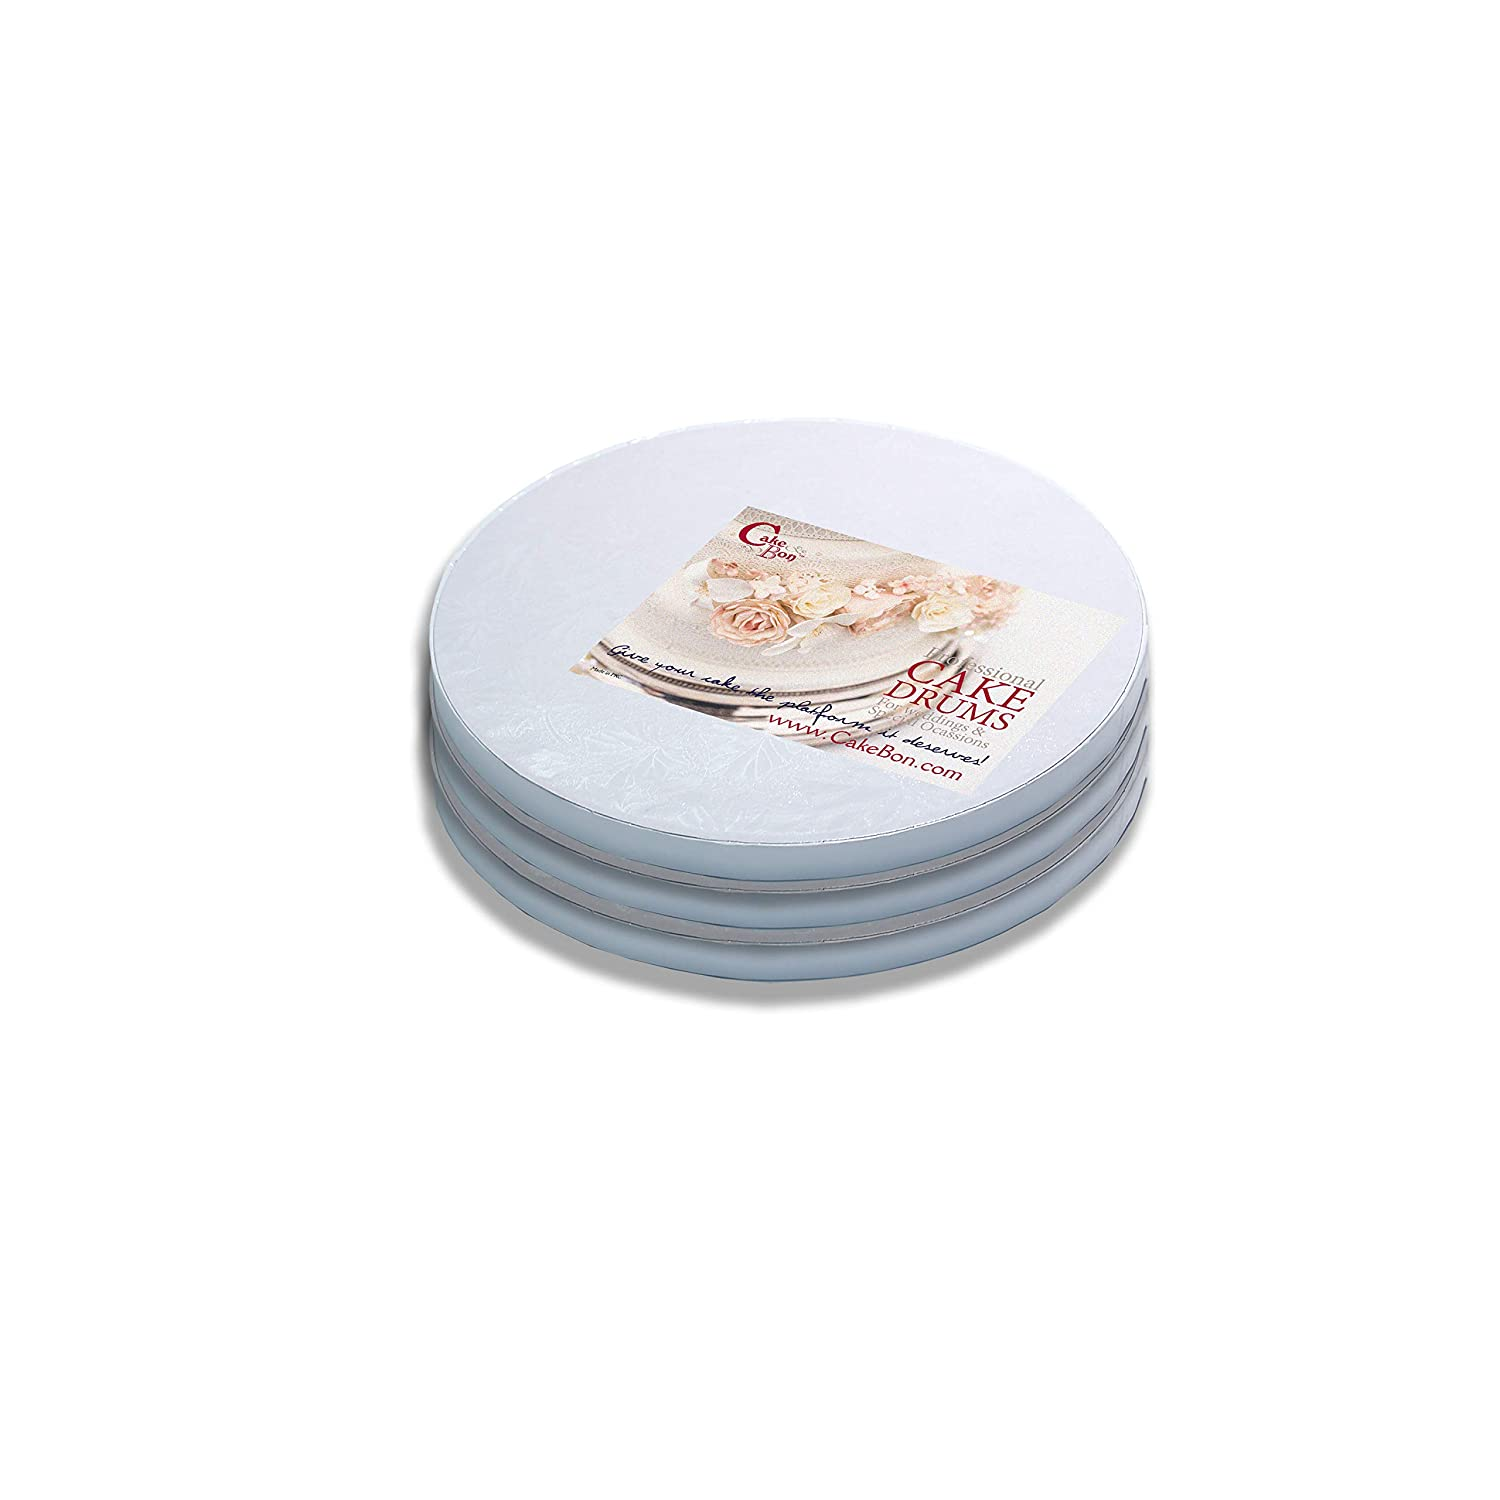 Cake Drums Round 8 Inches - (White, 3-Pack) - Sturdy 1/2 Inch Thick - Professional Smooth Straight Edges